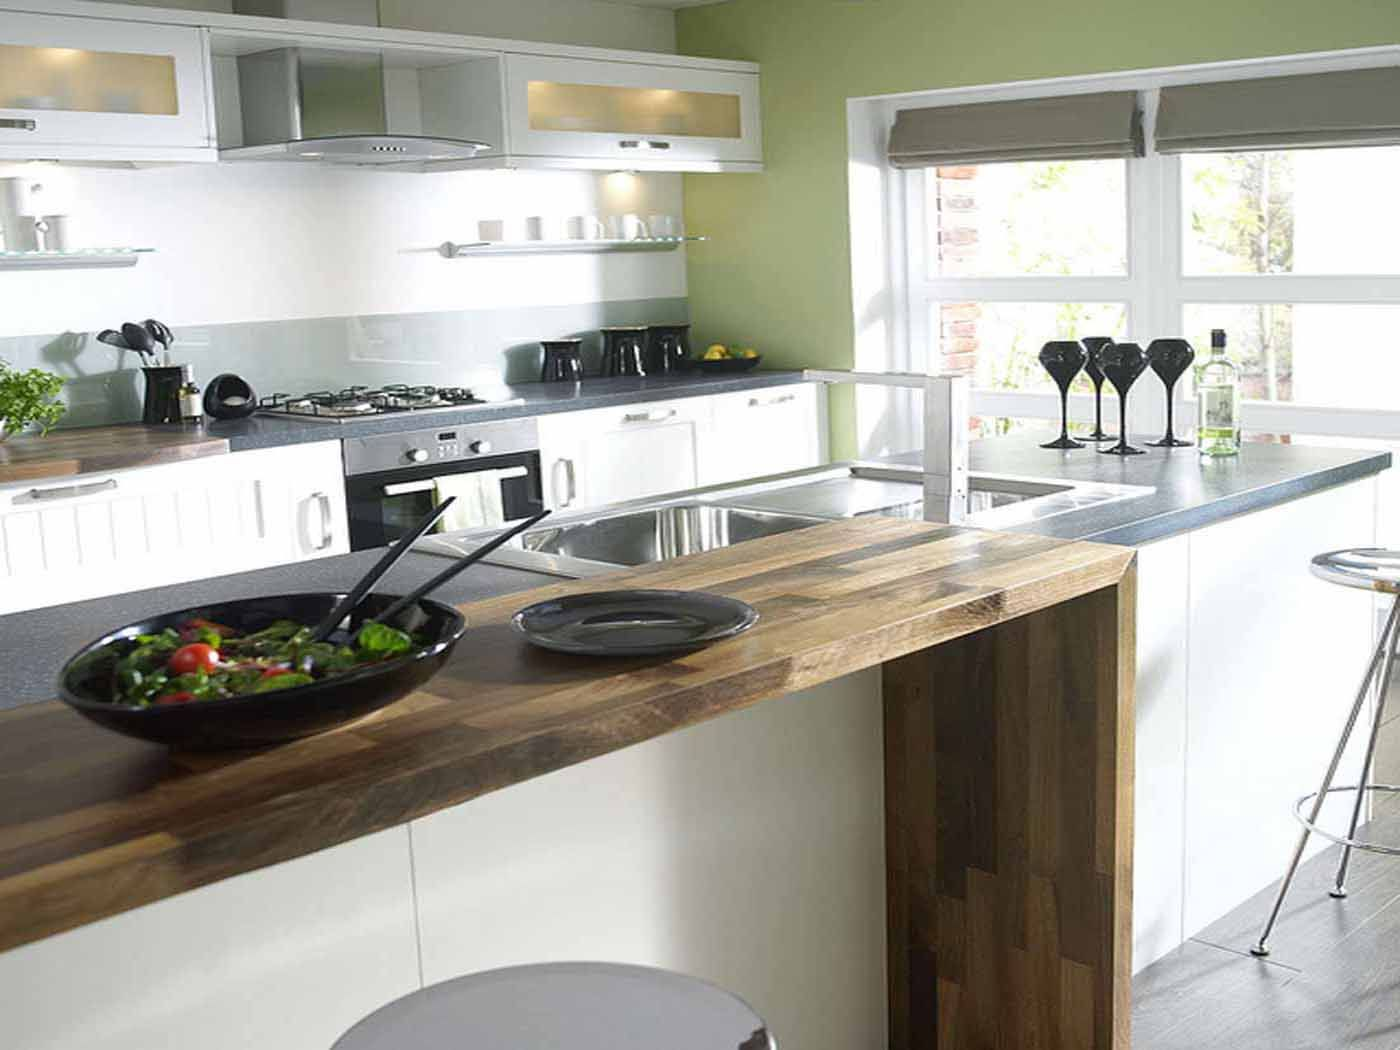 Kitchen, Cool Lighting Modern Ikea Ktichen Designs With Gray Tabletop And  Wooden Counter With Black